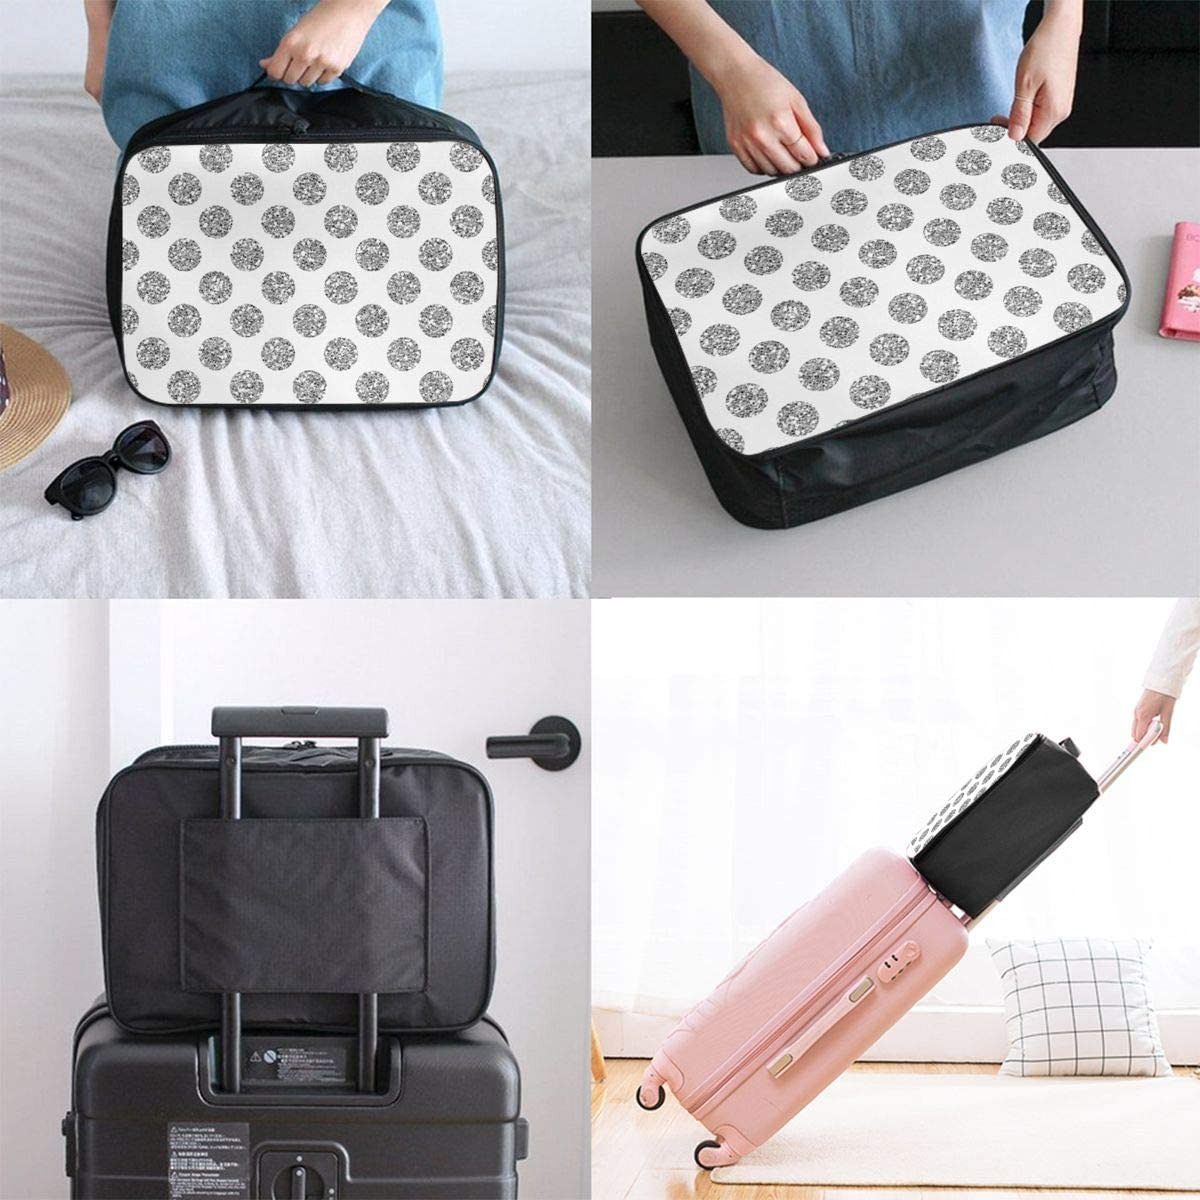 Glitter-polkadot Travel Carry-on Luggage Weekender Bag Overnight Tote Flight Duffel In Trolley Handle